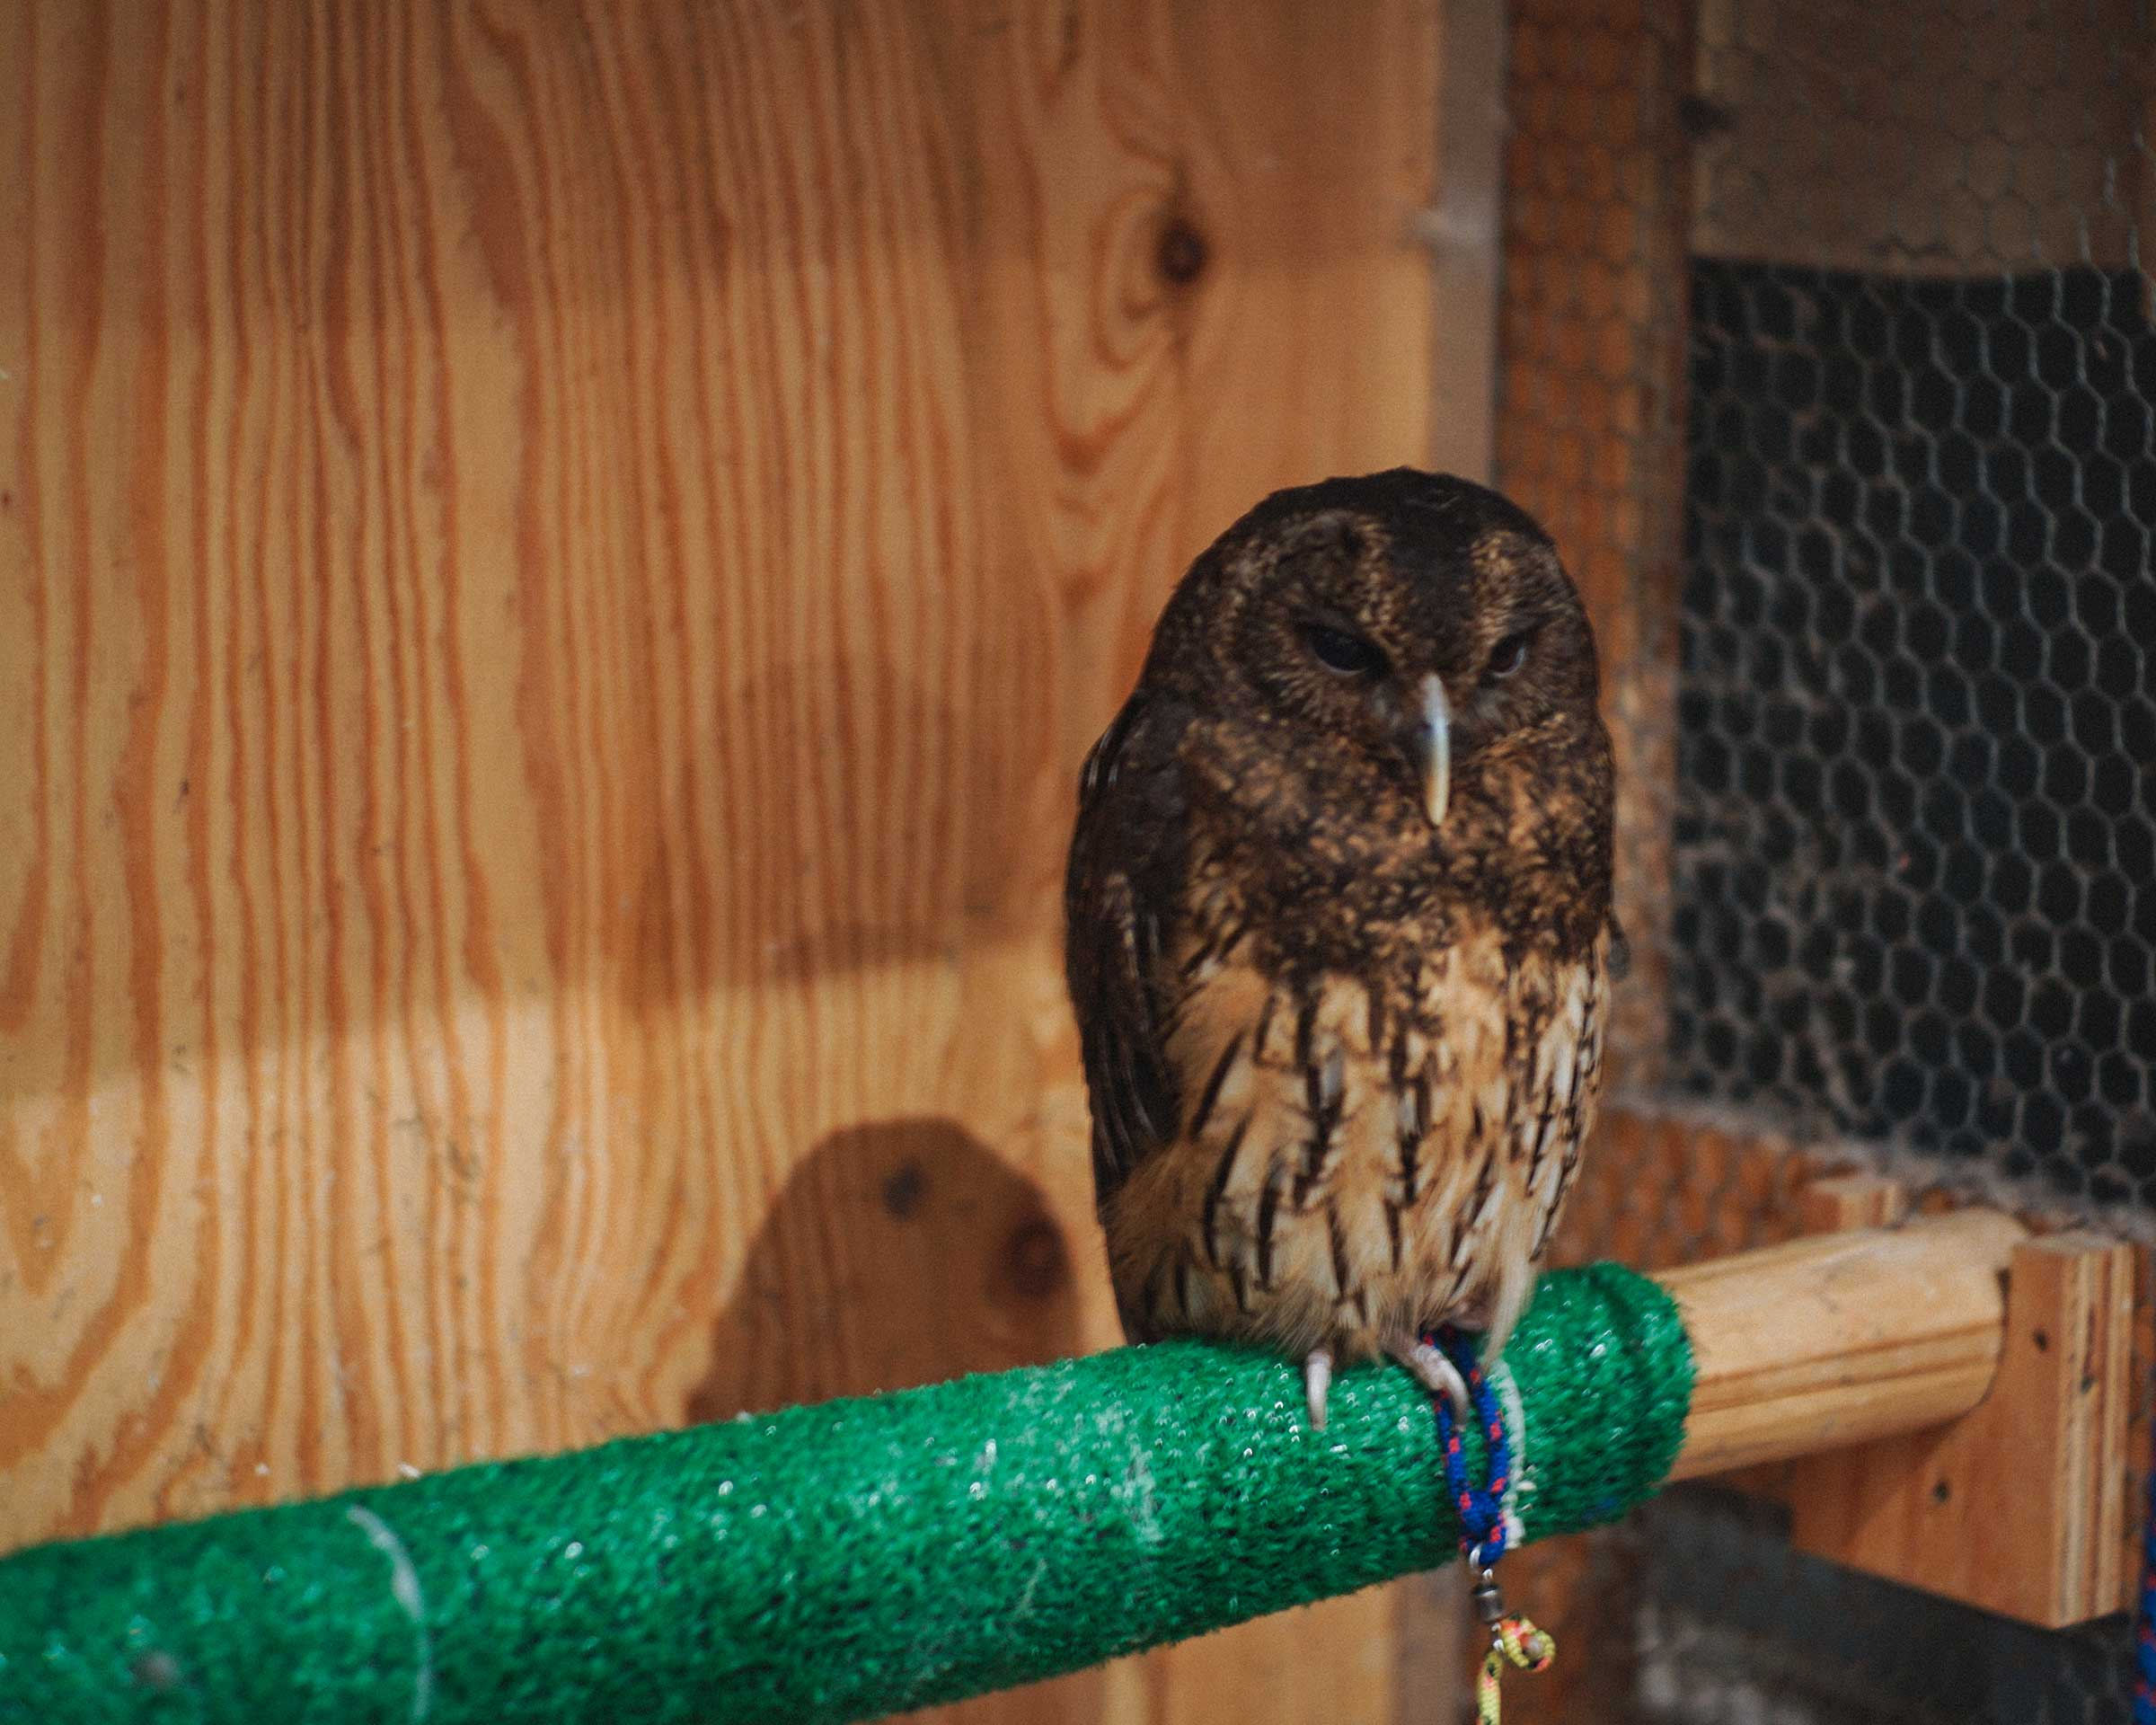 Mottled Owl : Hina-chan at Cafe HOOT HOOT